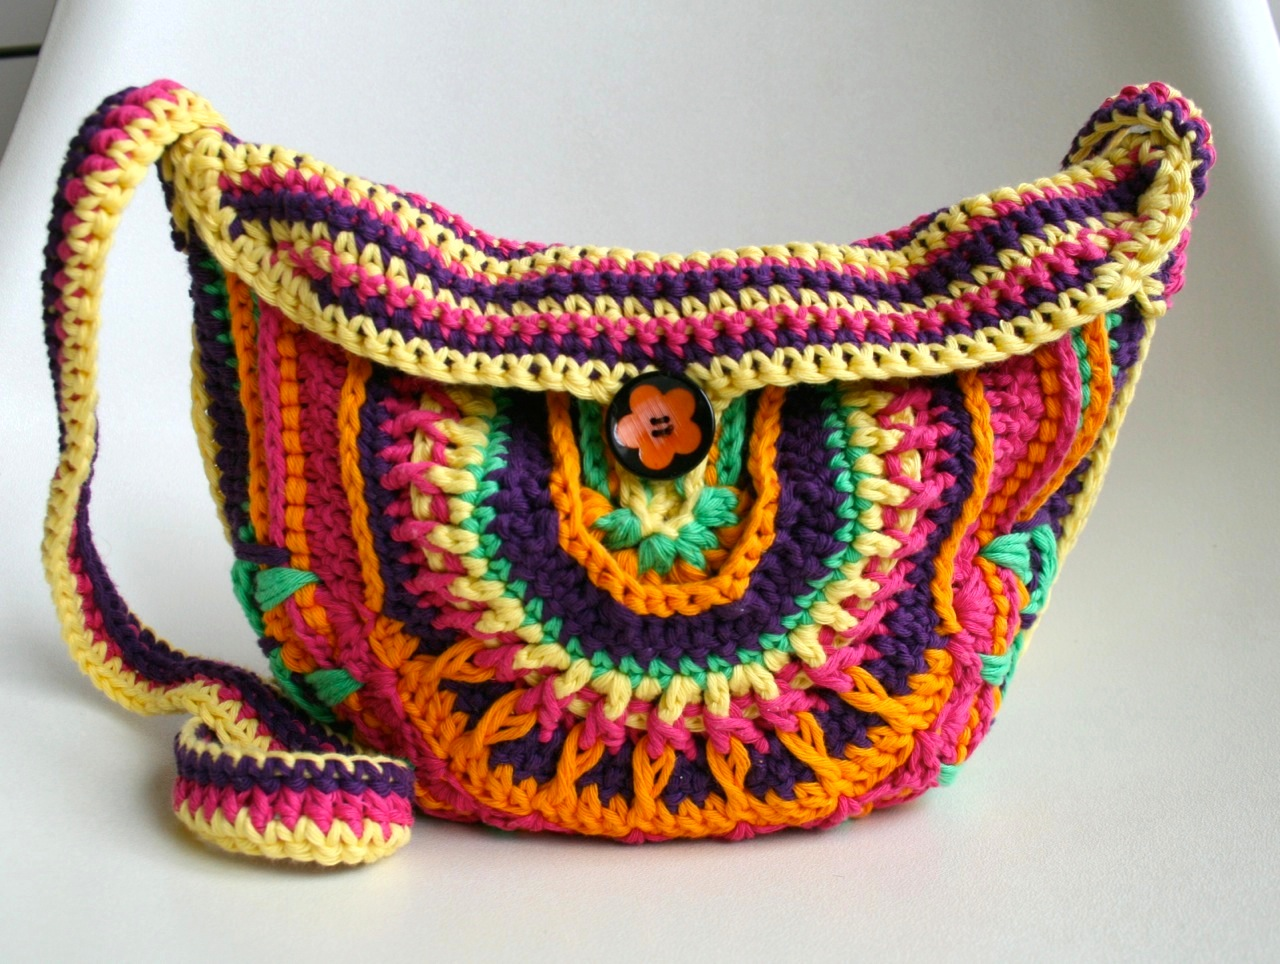 31 Crochet Purse Patterns - The Funky Stitch